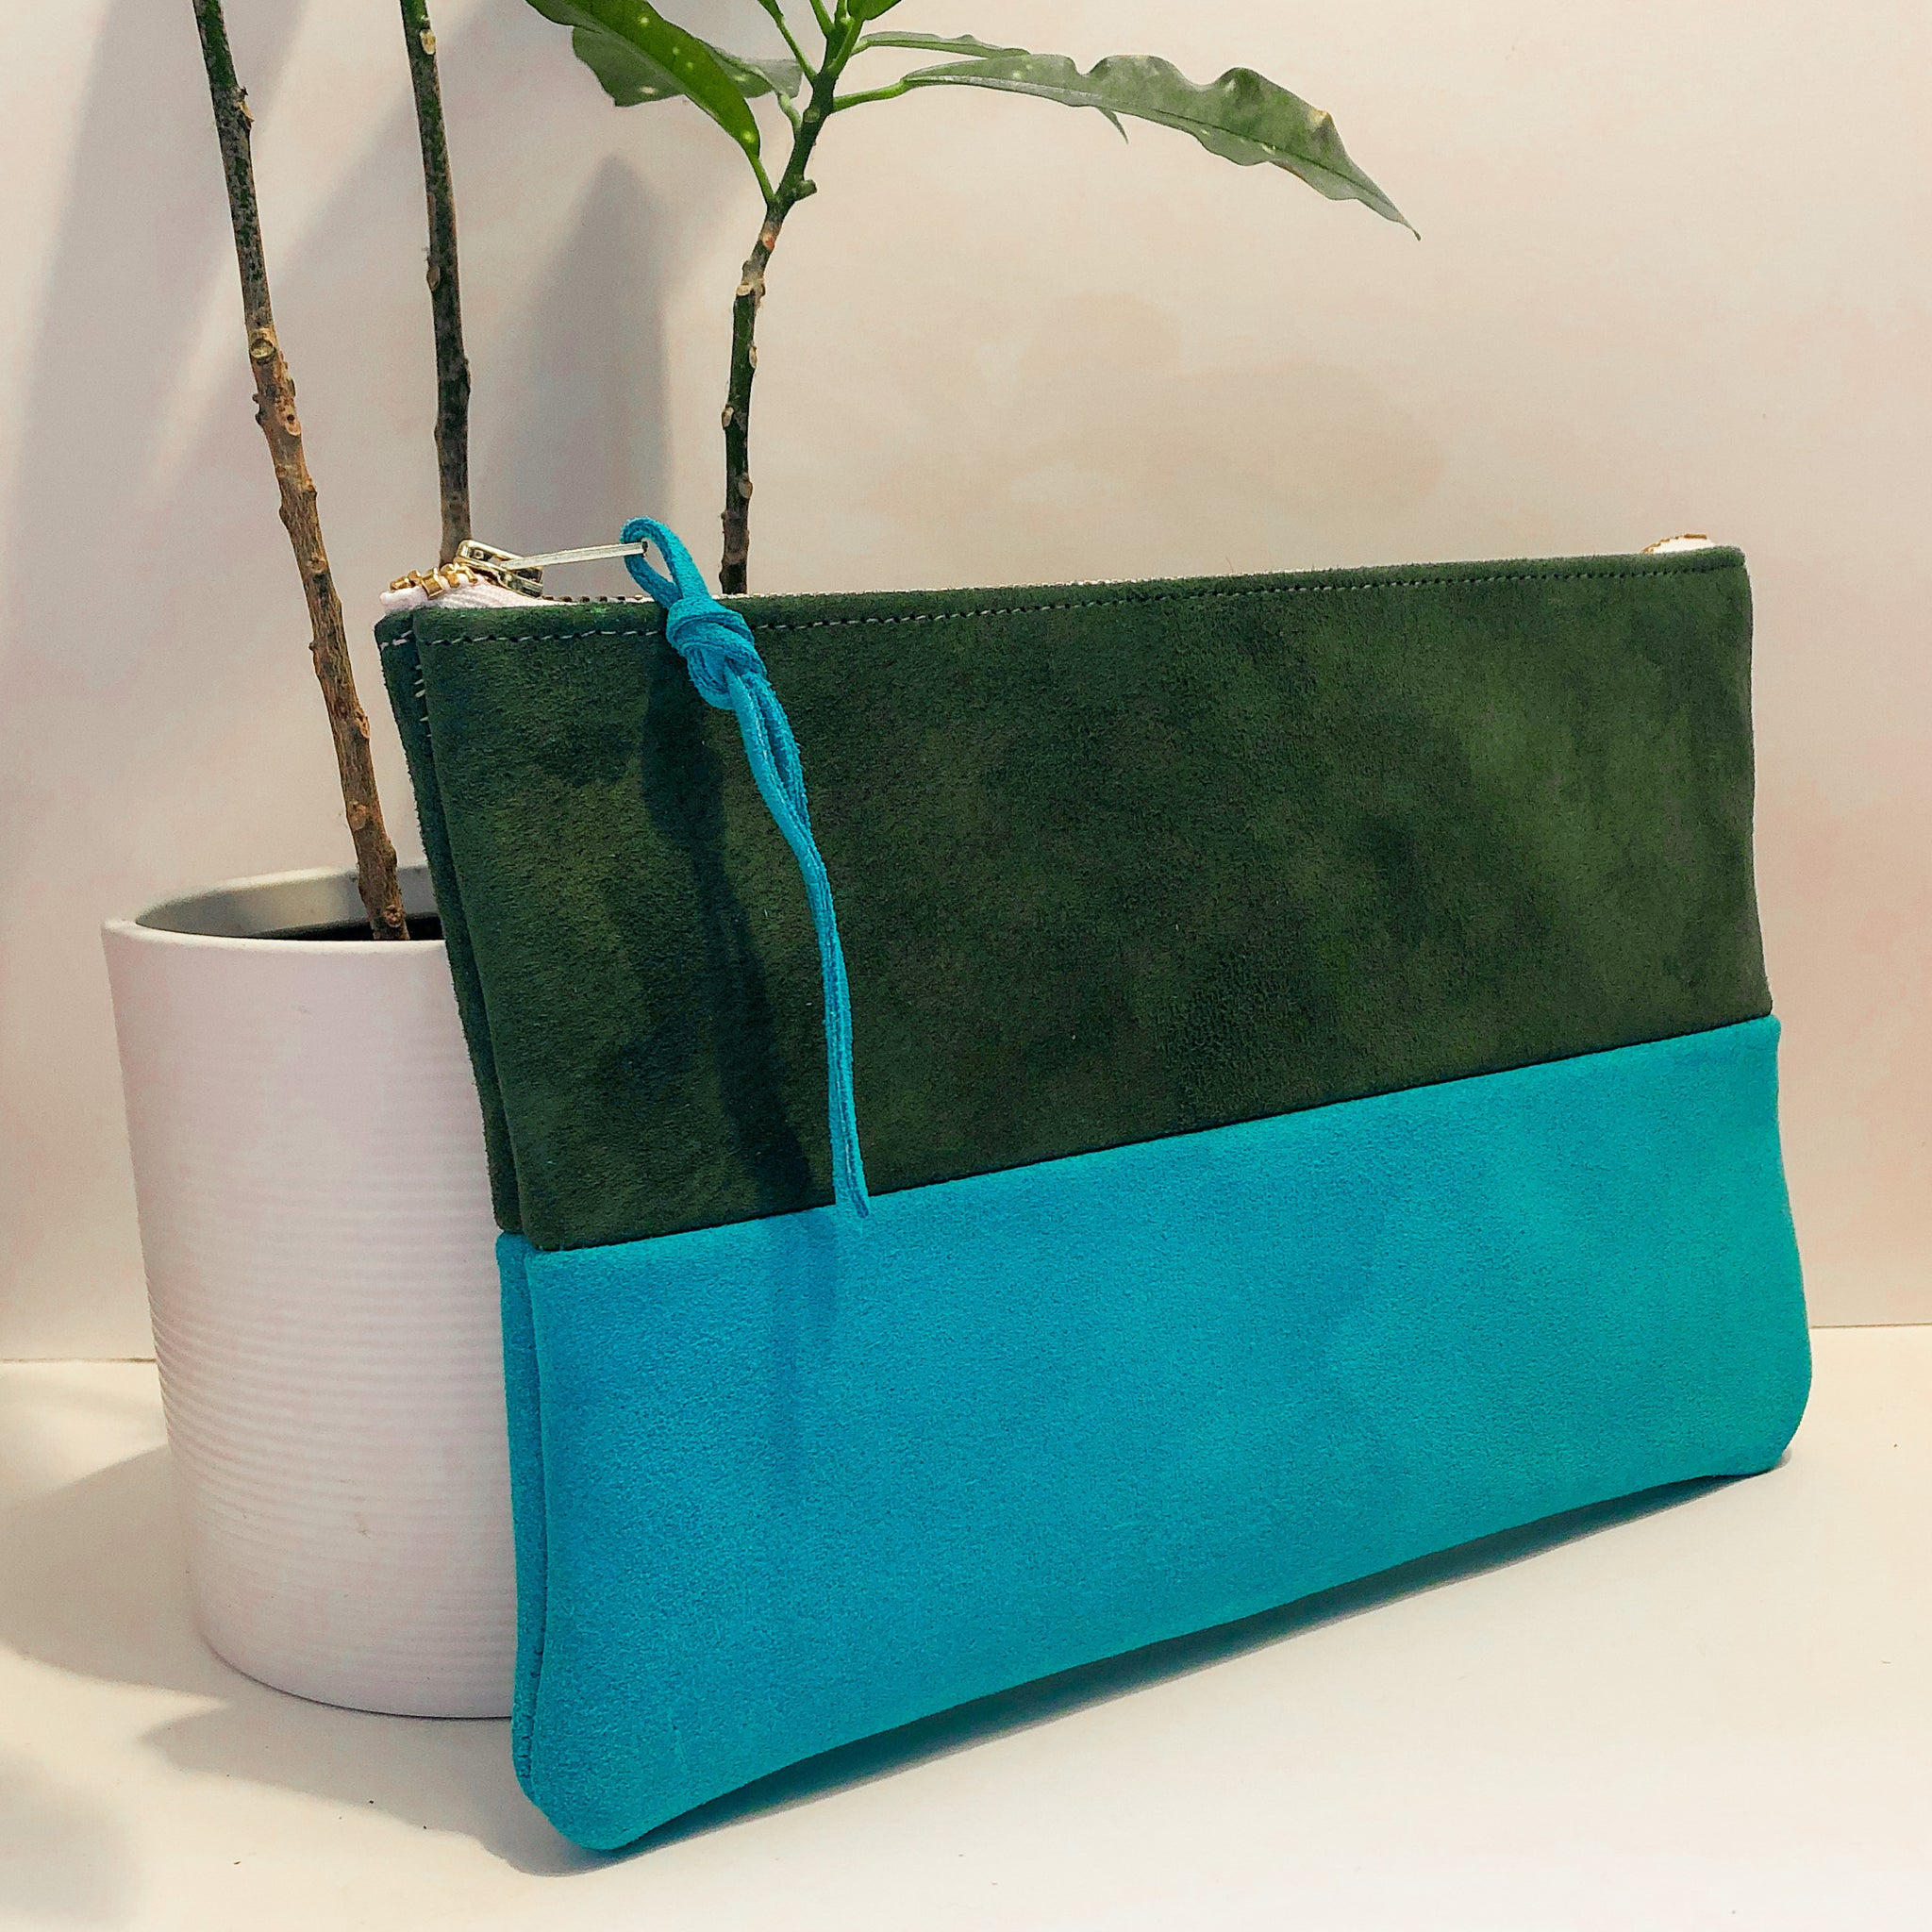 The Color-Block (Forest Green and Bright Blue Suede)